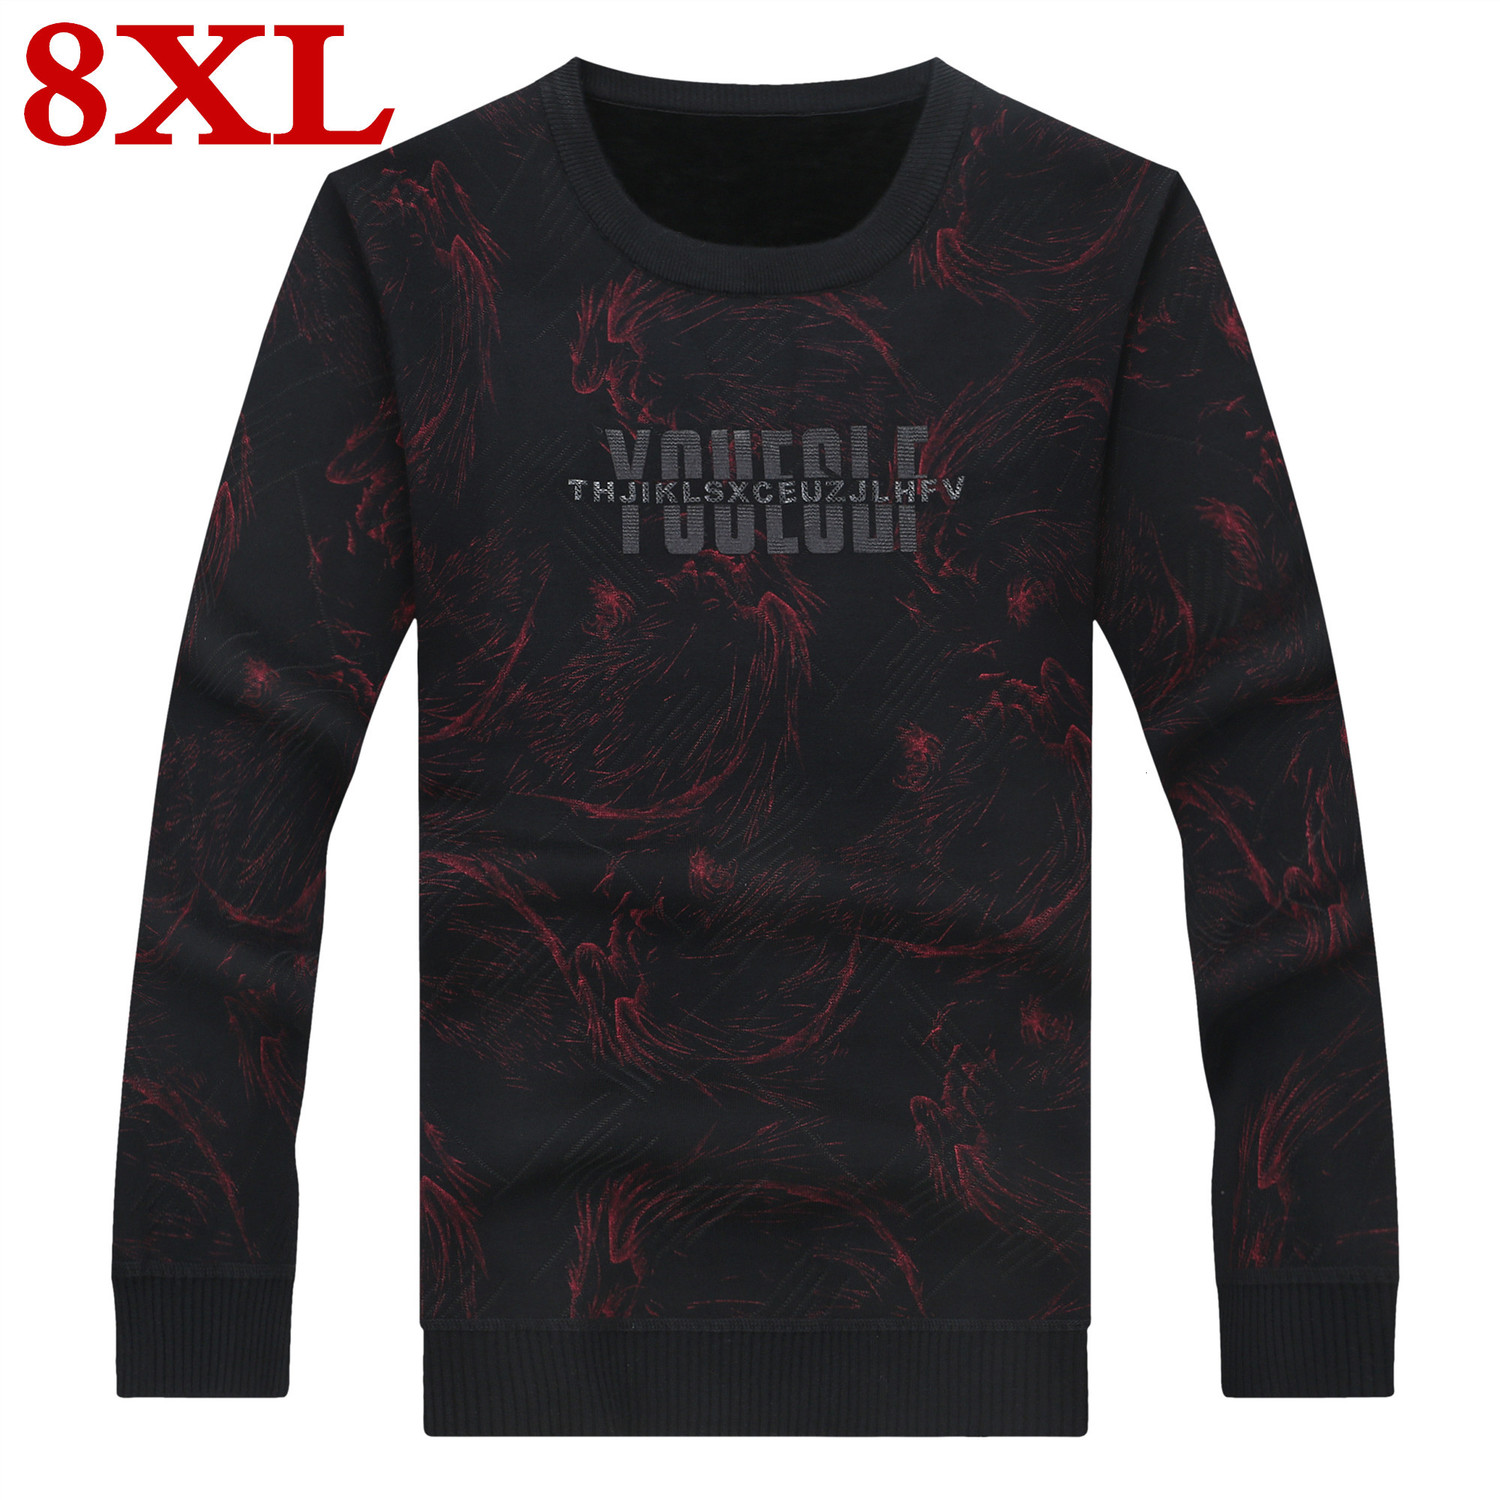 New Plus Size 8XL 7XL 6XL Sweater Man Pure Cashmere Knitted Winter Warm Pullovers Round Neck Long Sleeve Standard  Sweaters Male